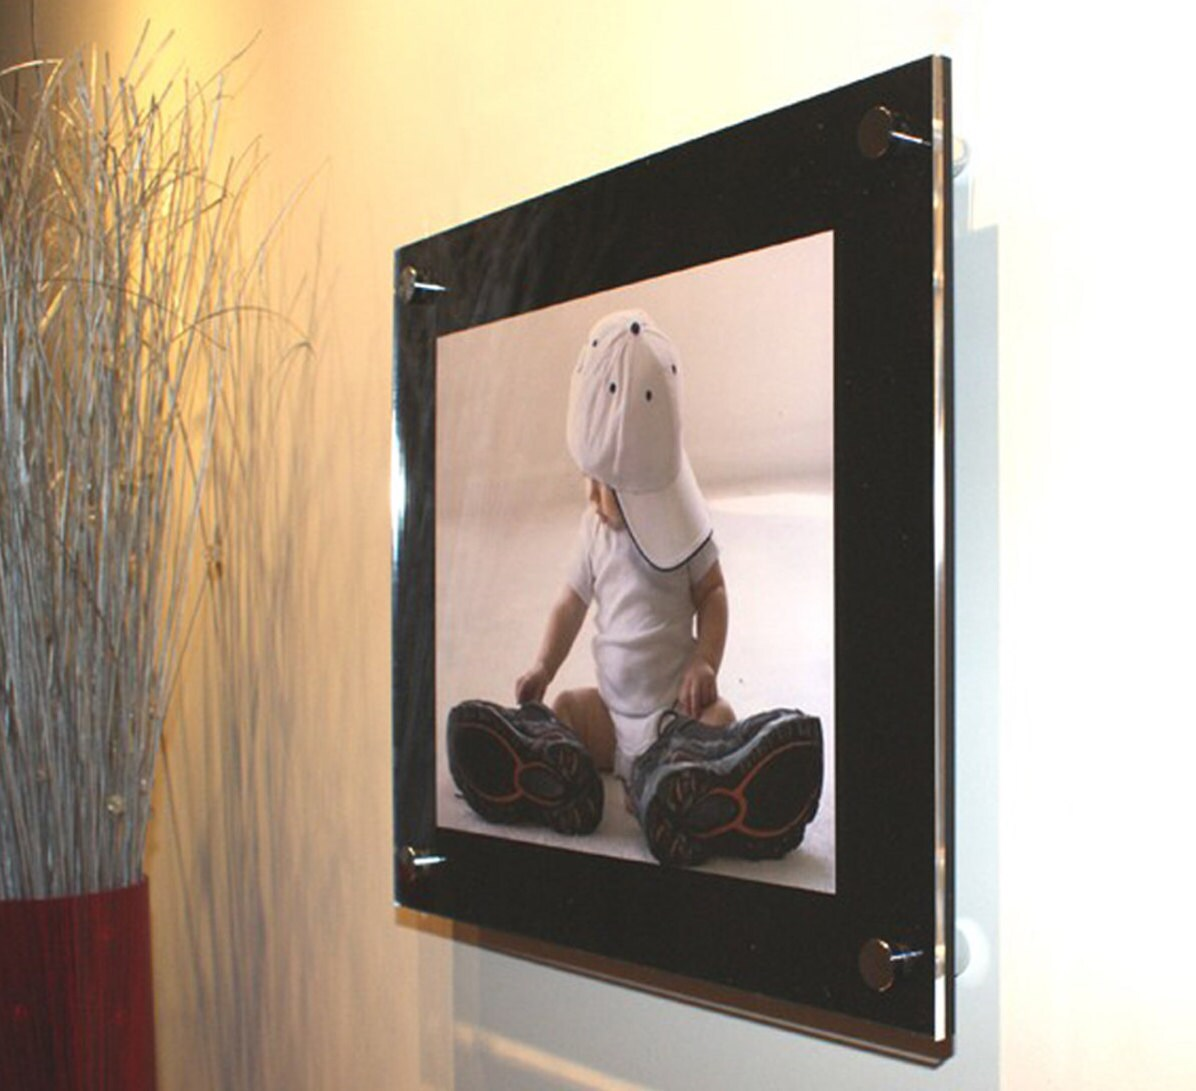 black cheshire acrylic 22x16 picture photo wall frame for a 12x18 305x407cm photo made in uk